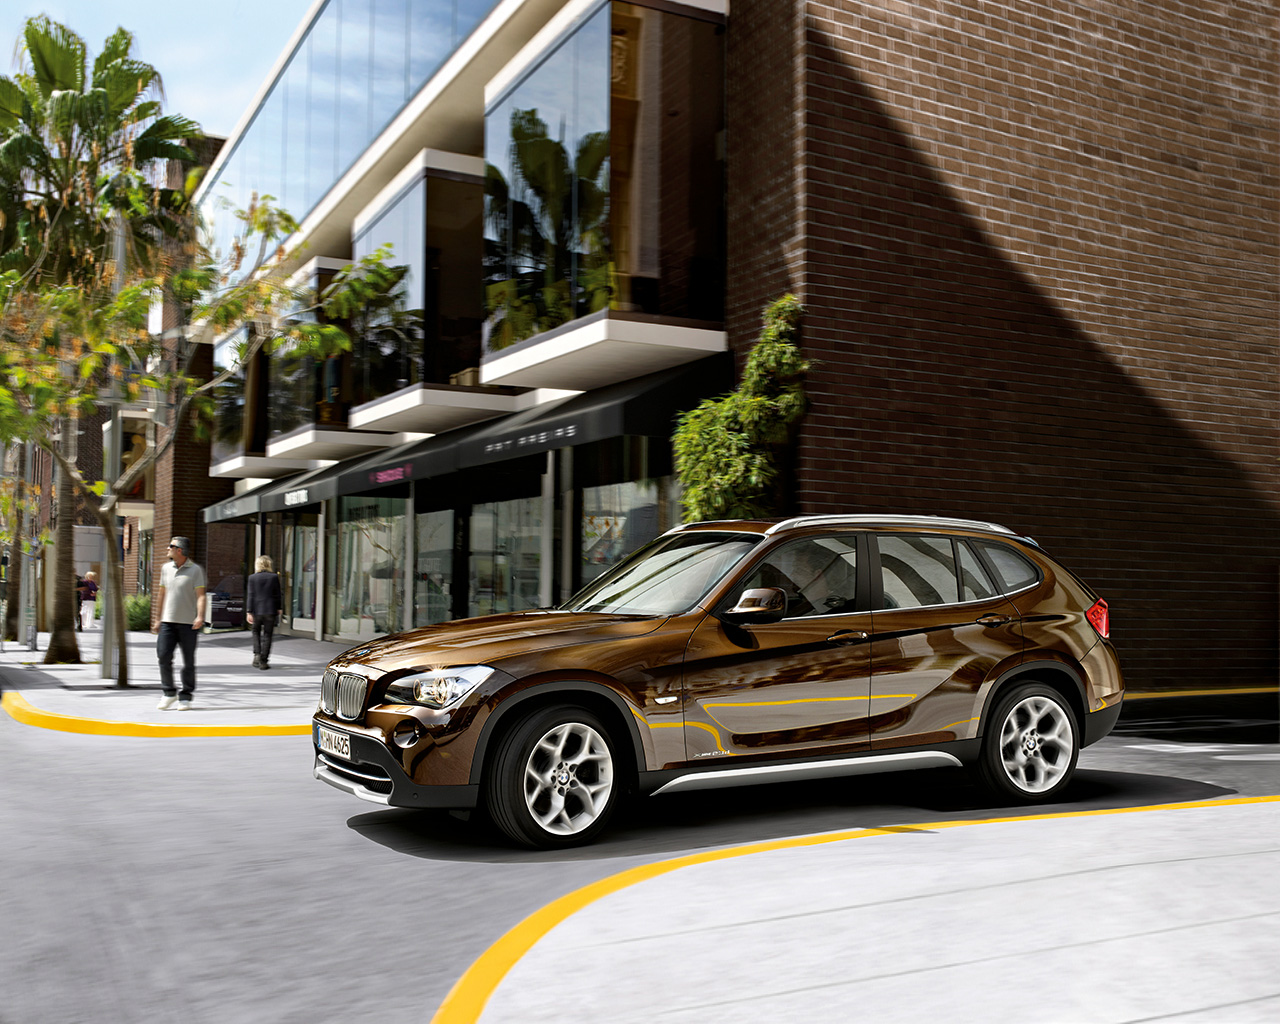 Bmw X1 Hd Wallpapers Bmw Cars Amp Bikes